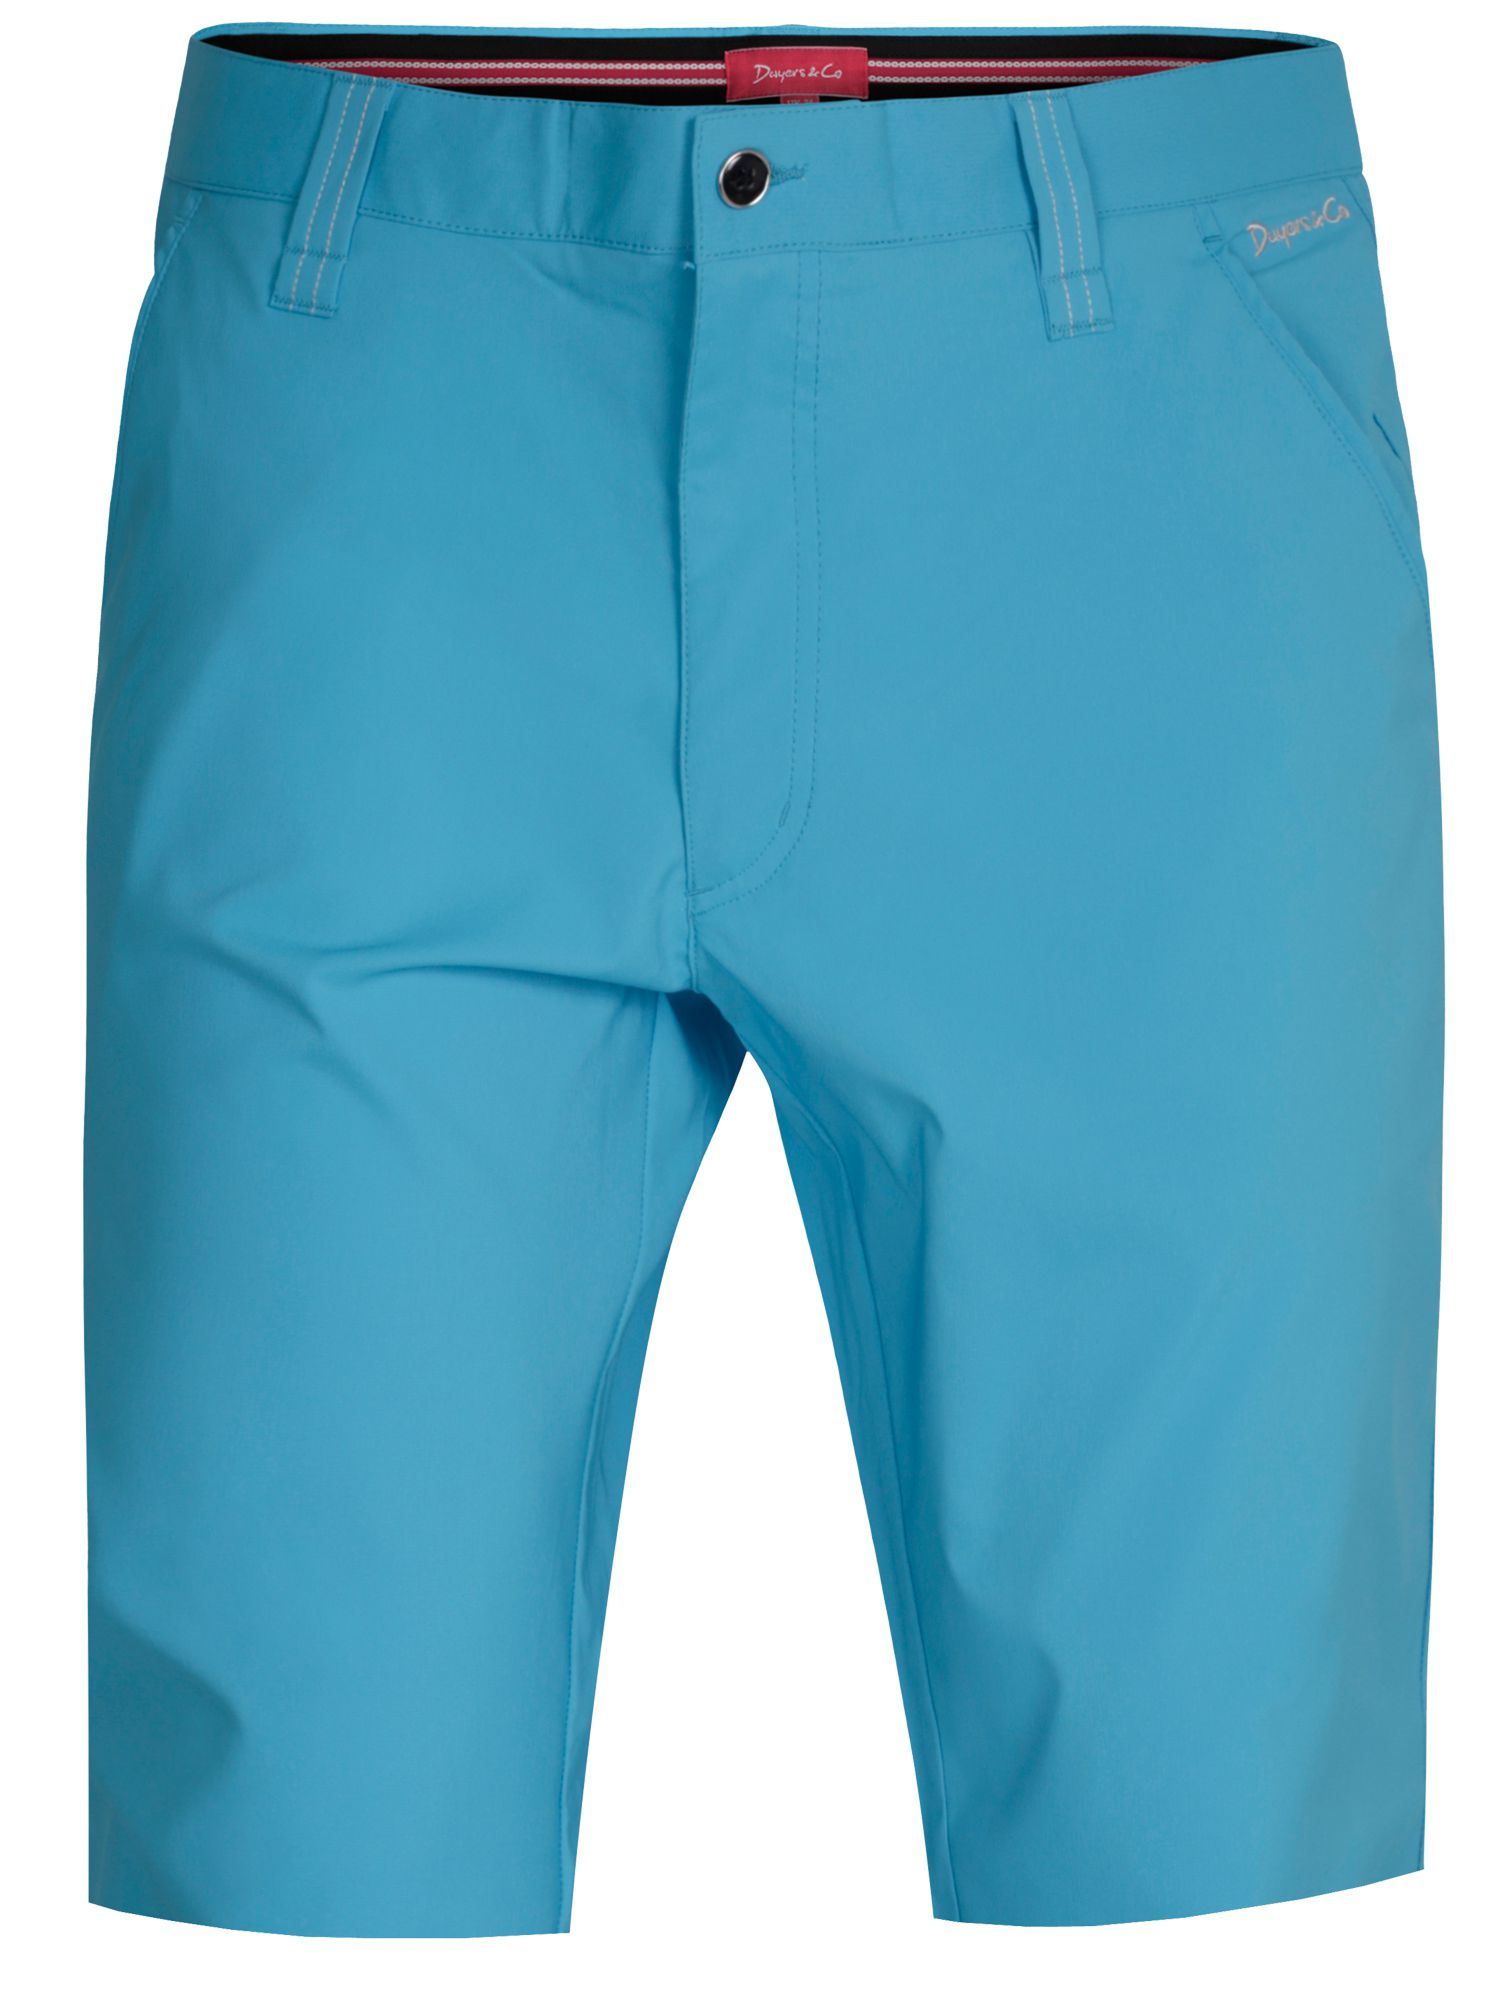 Dwyers and Co Men's Dwyers and Co Micro Tech 2.0 shorts, Aqua